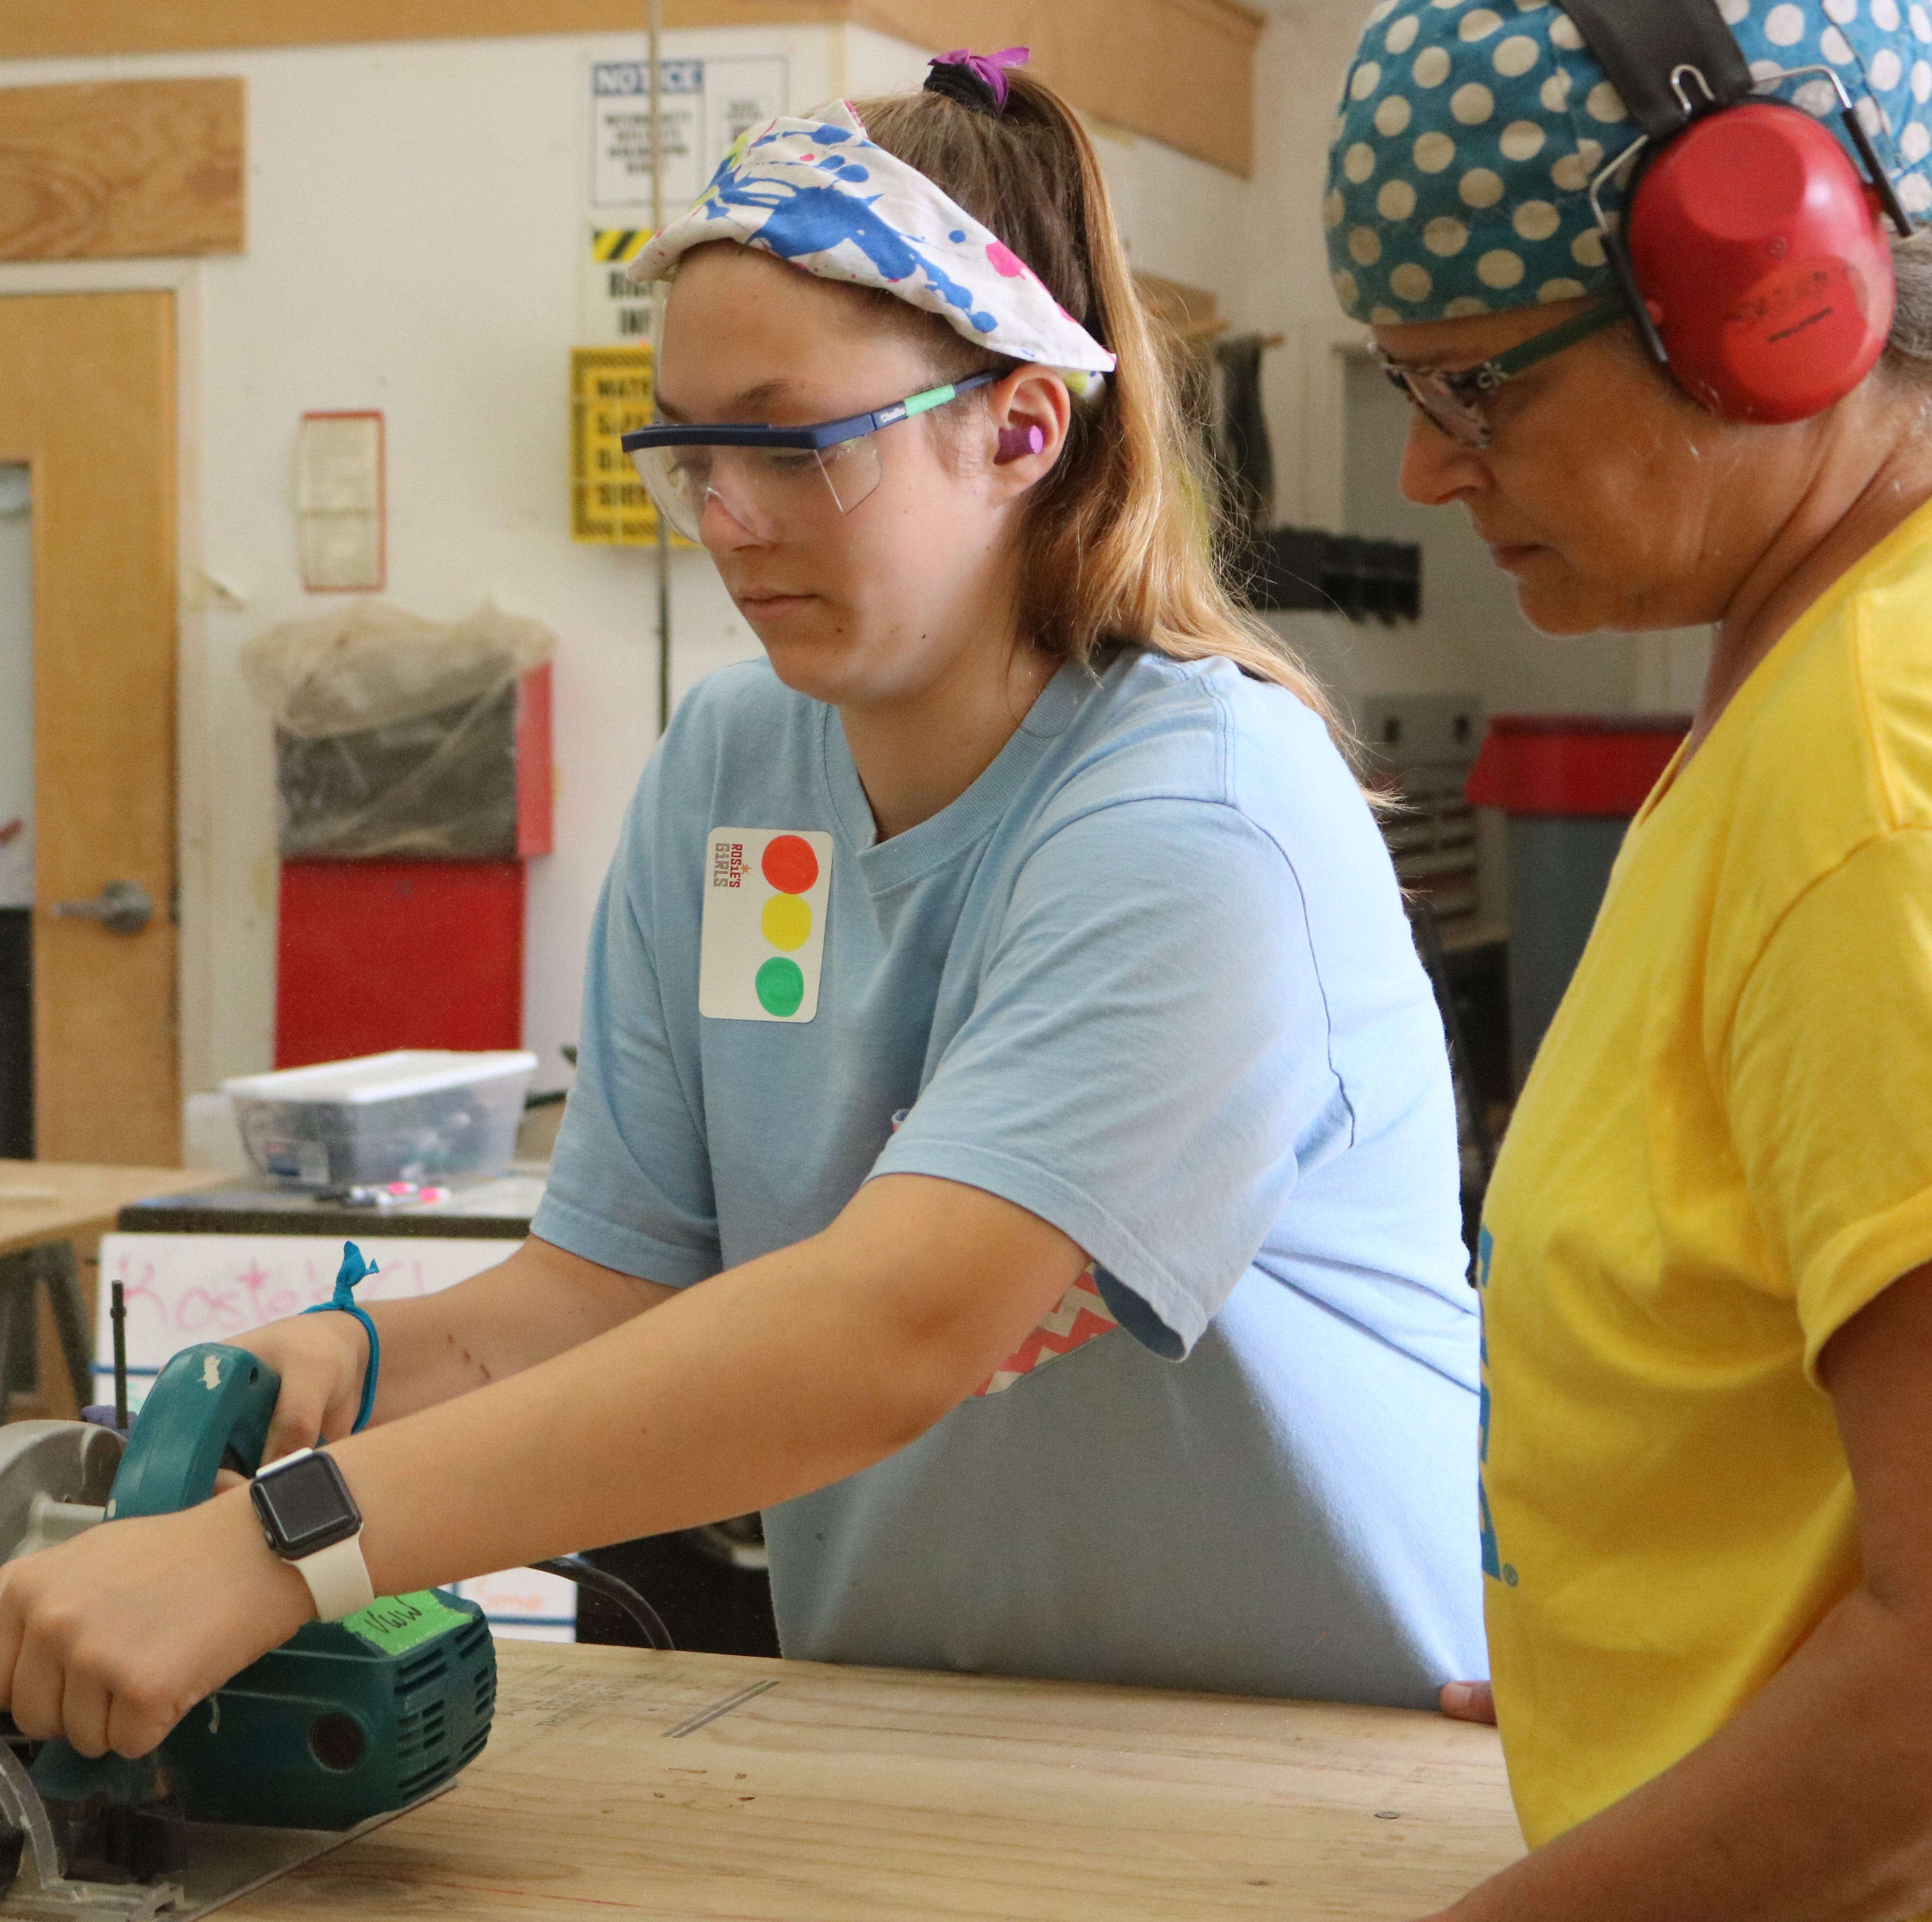 Grit and power tools drive better financial futures for Vermont girls